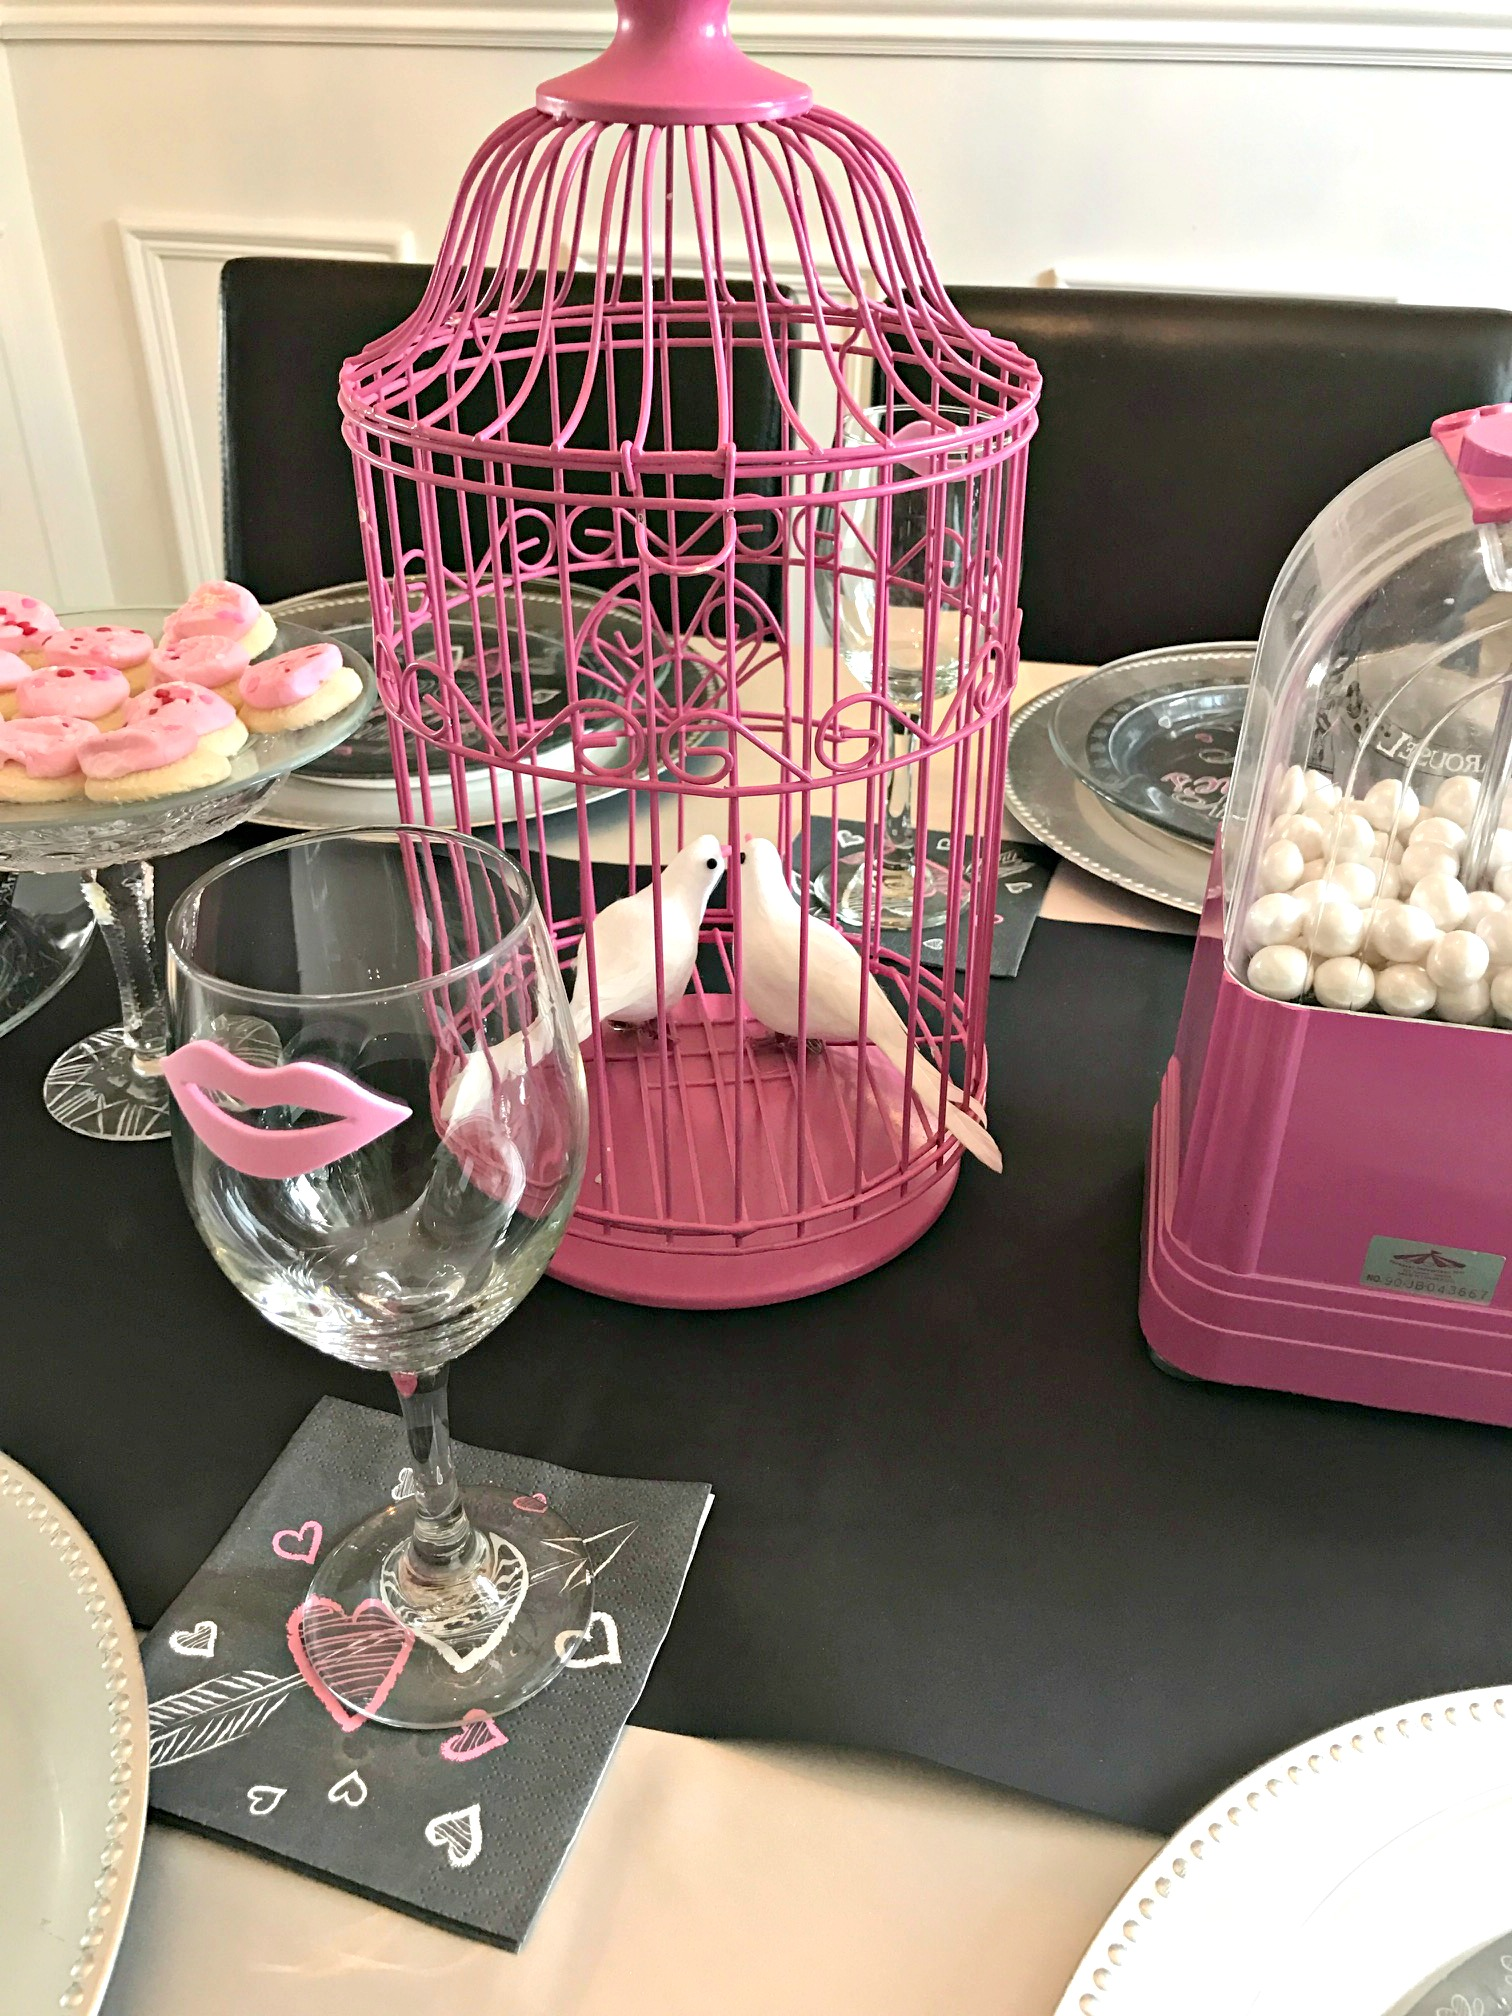 Valentine's Day Table setting using pink and black with chalkboard accents and a candy bar